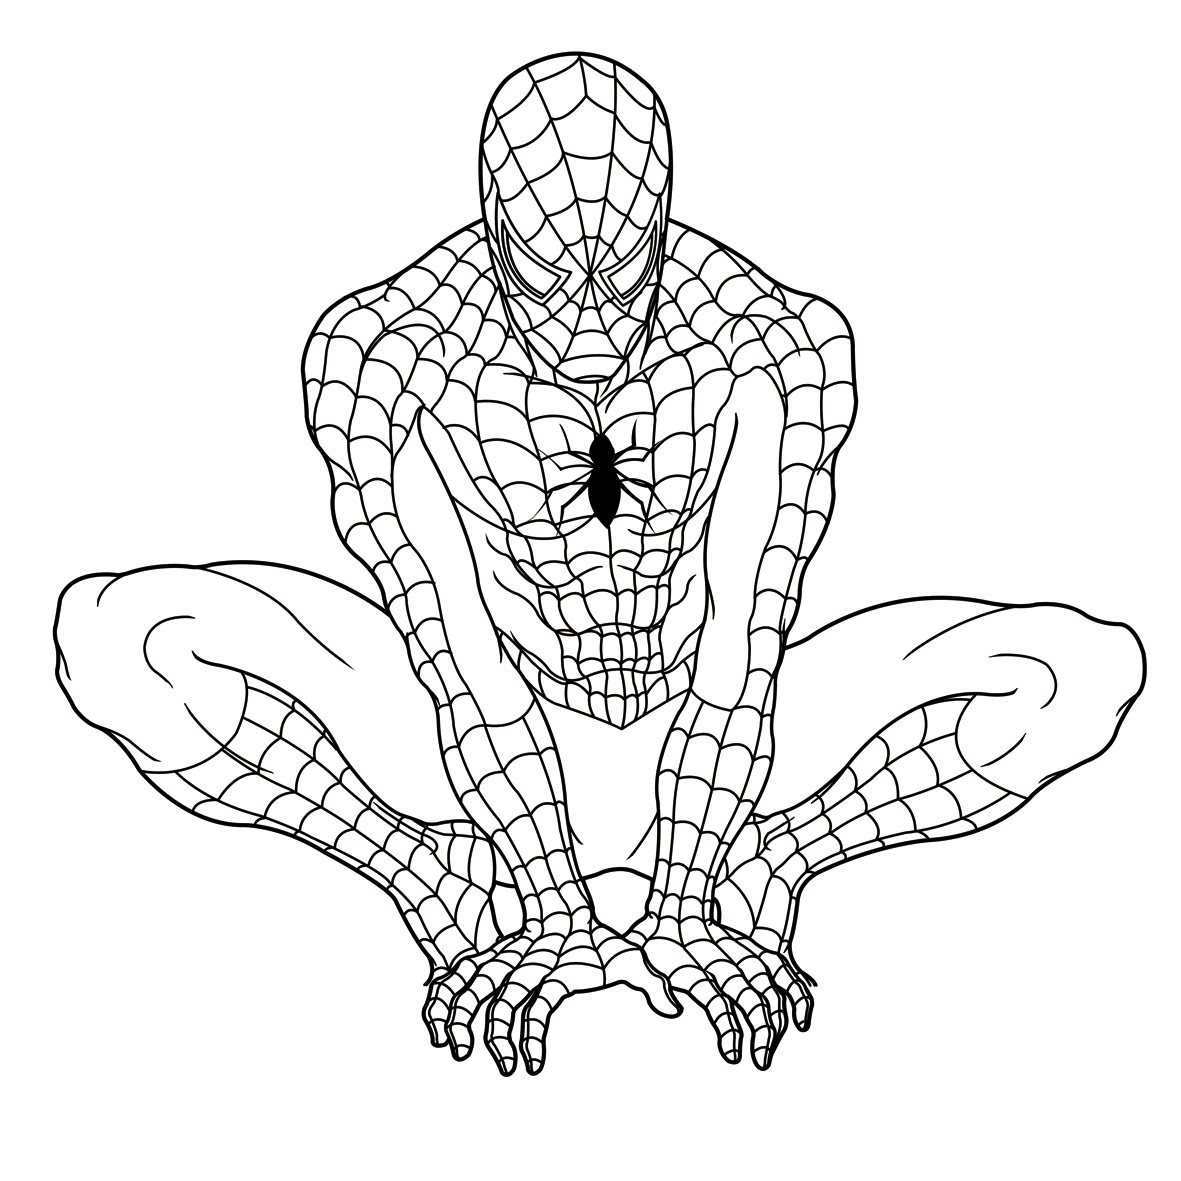 photograph regarding Spiderman Printable Coloring Pages named Cost-free Printable Spiderman Coloring Webpages For Little ones